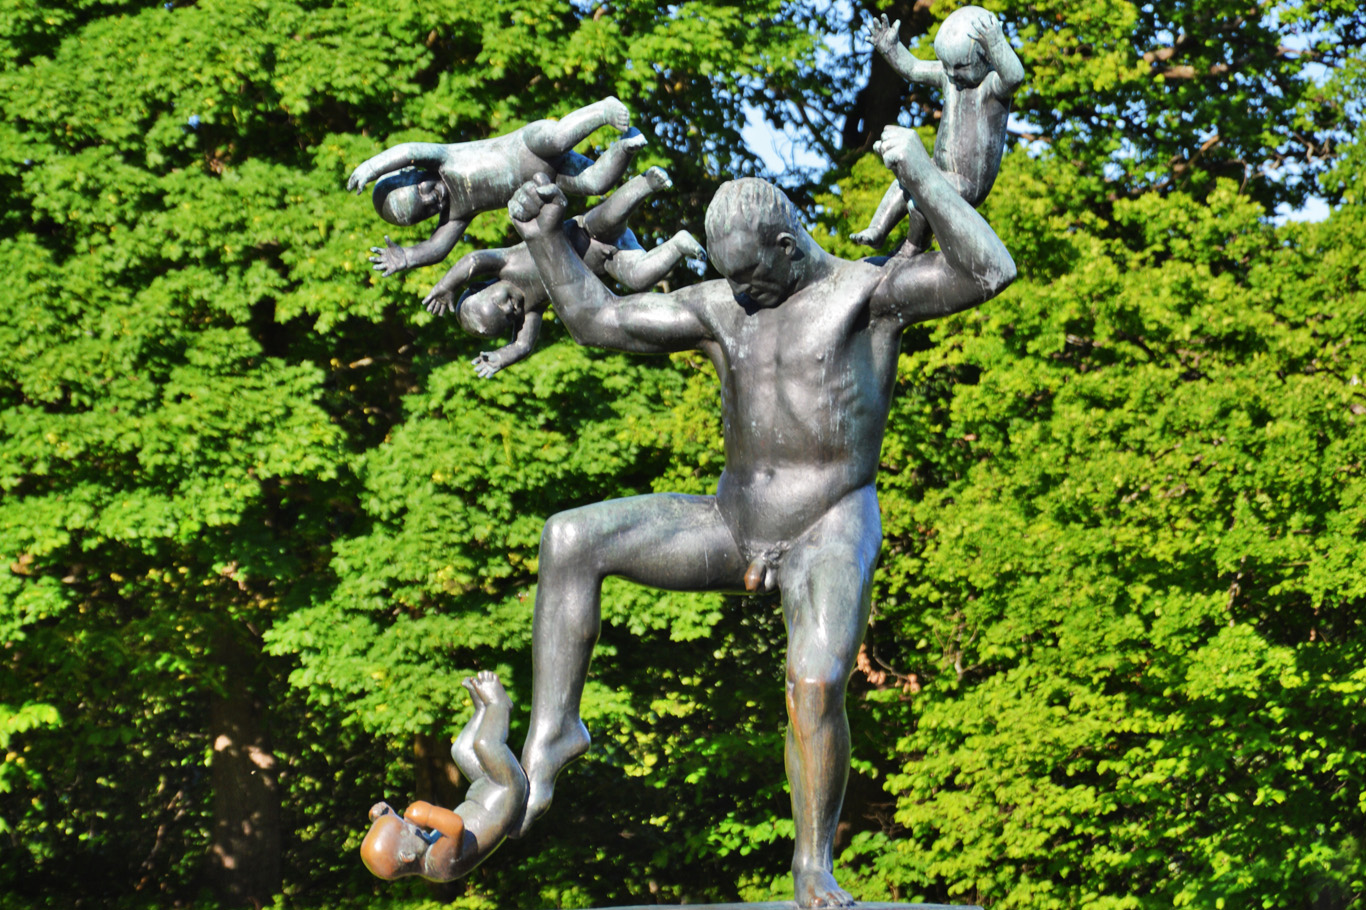 Sculpture in Vigeland Park